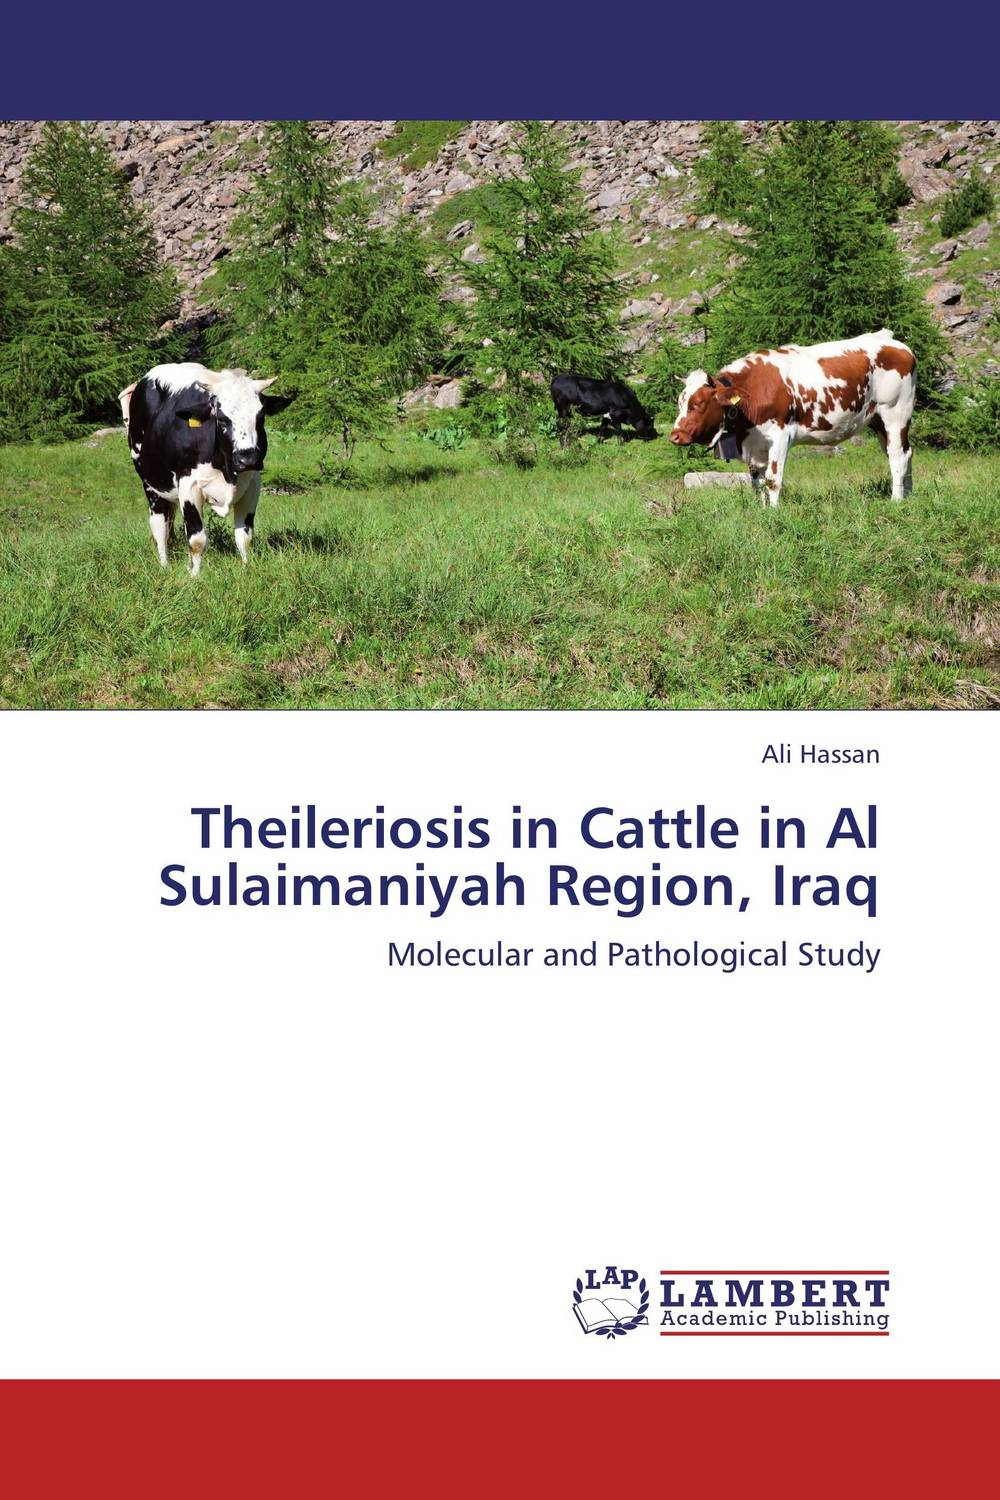 Фото Theileriosis in Cattle in Al Sulaimaniyah Region, Iraq cervical cancer in amhara region in ethiopia